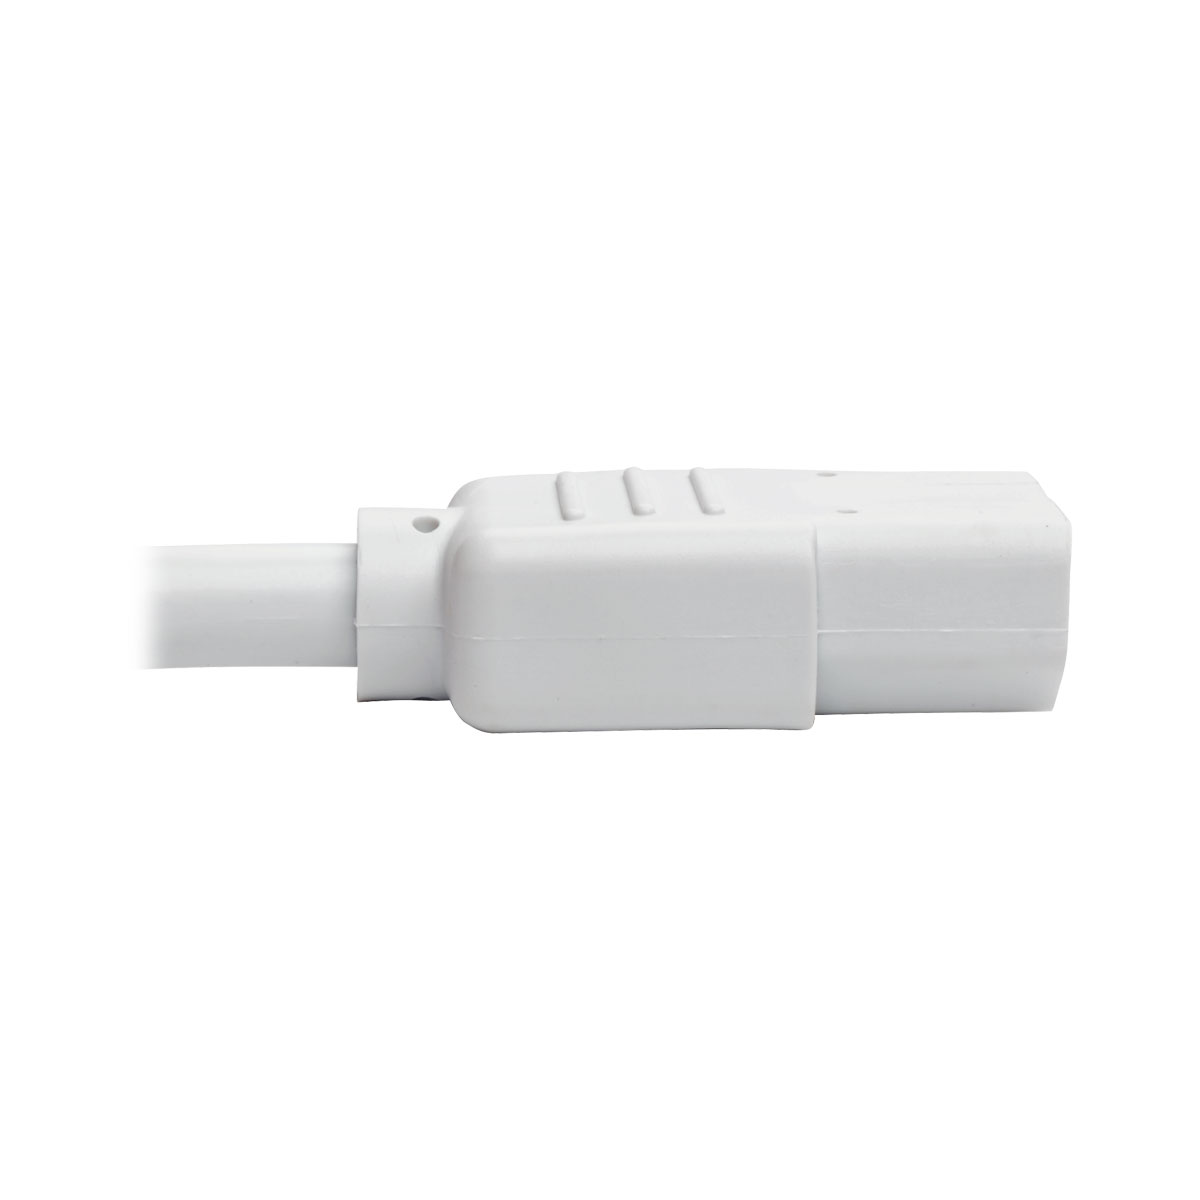 Tripp Lite Heavy Duty Power Extension Cord 15A 14 AWG C14 to C13 White 3'